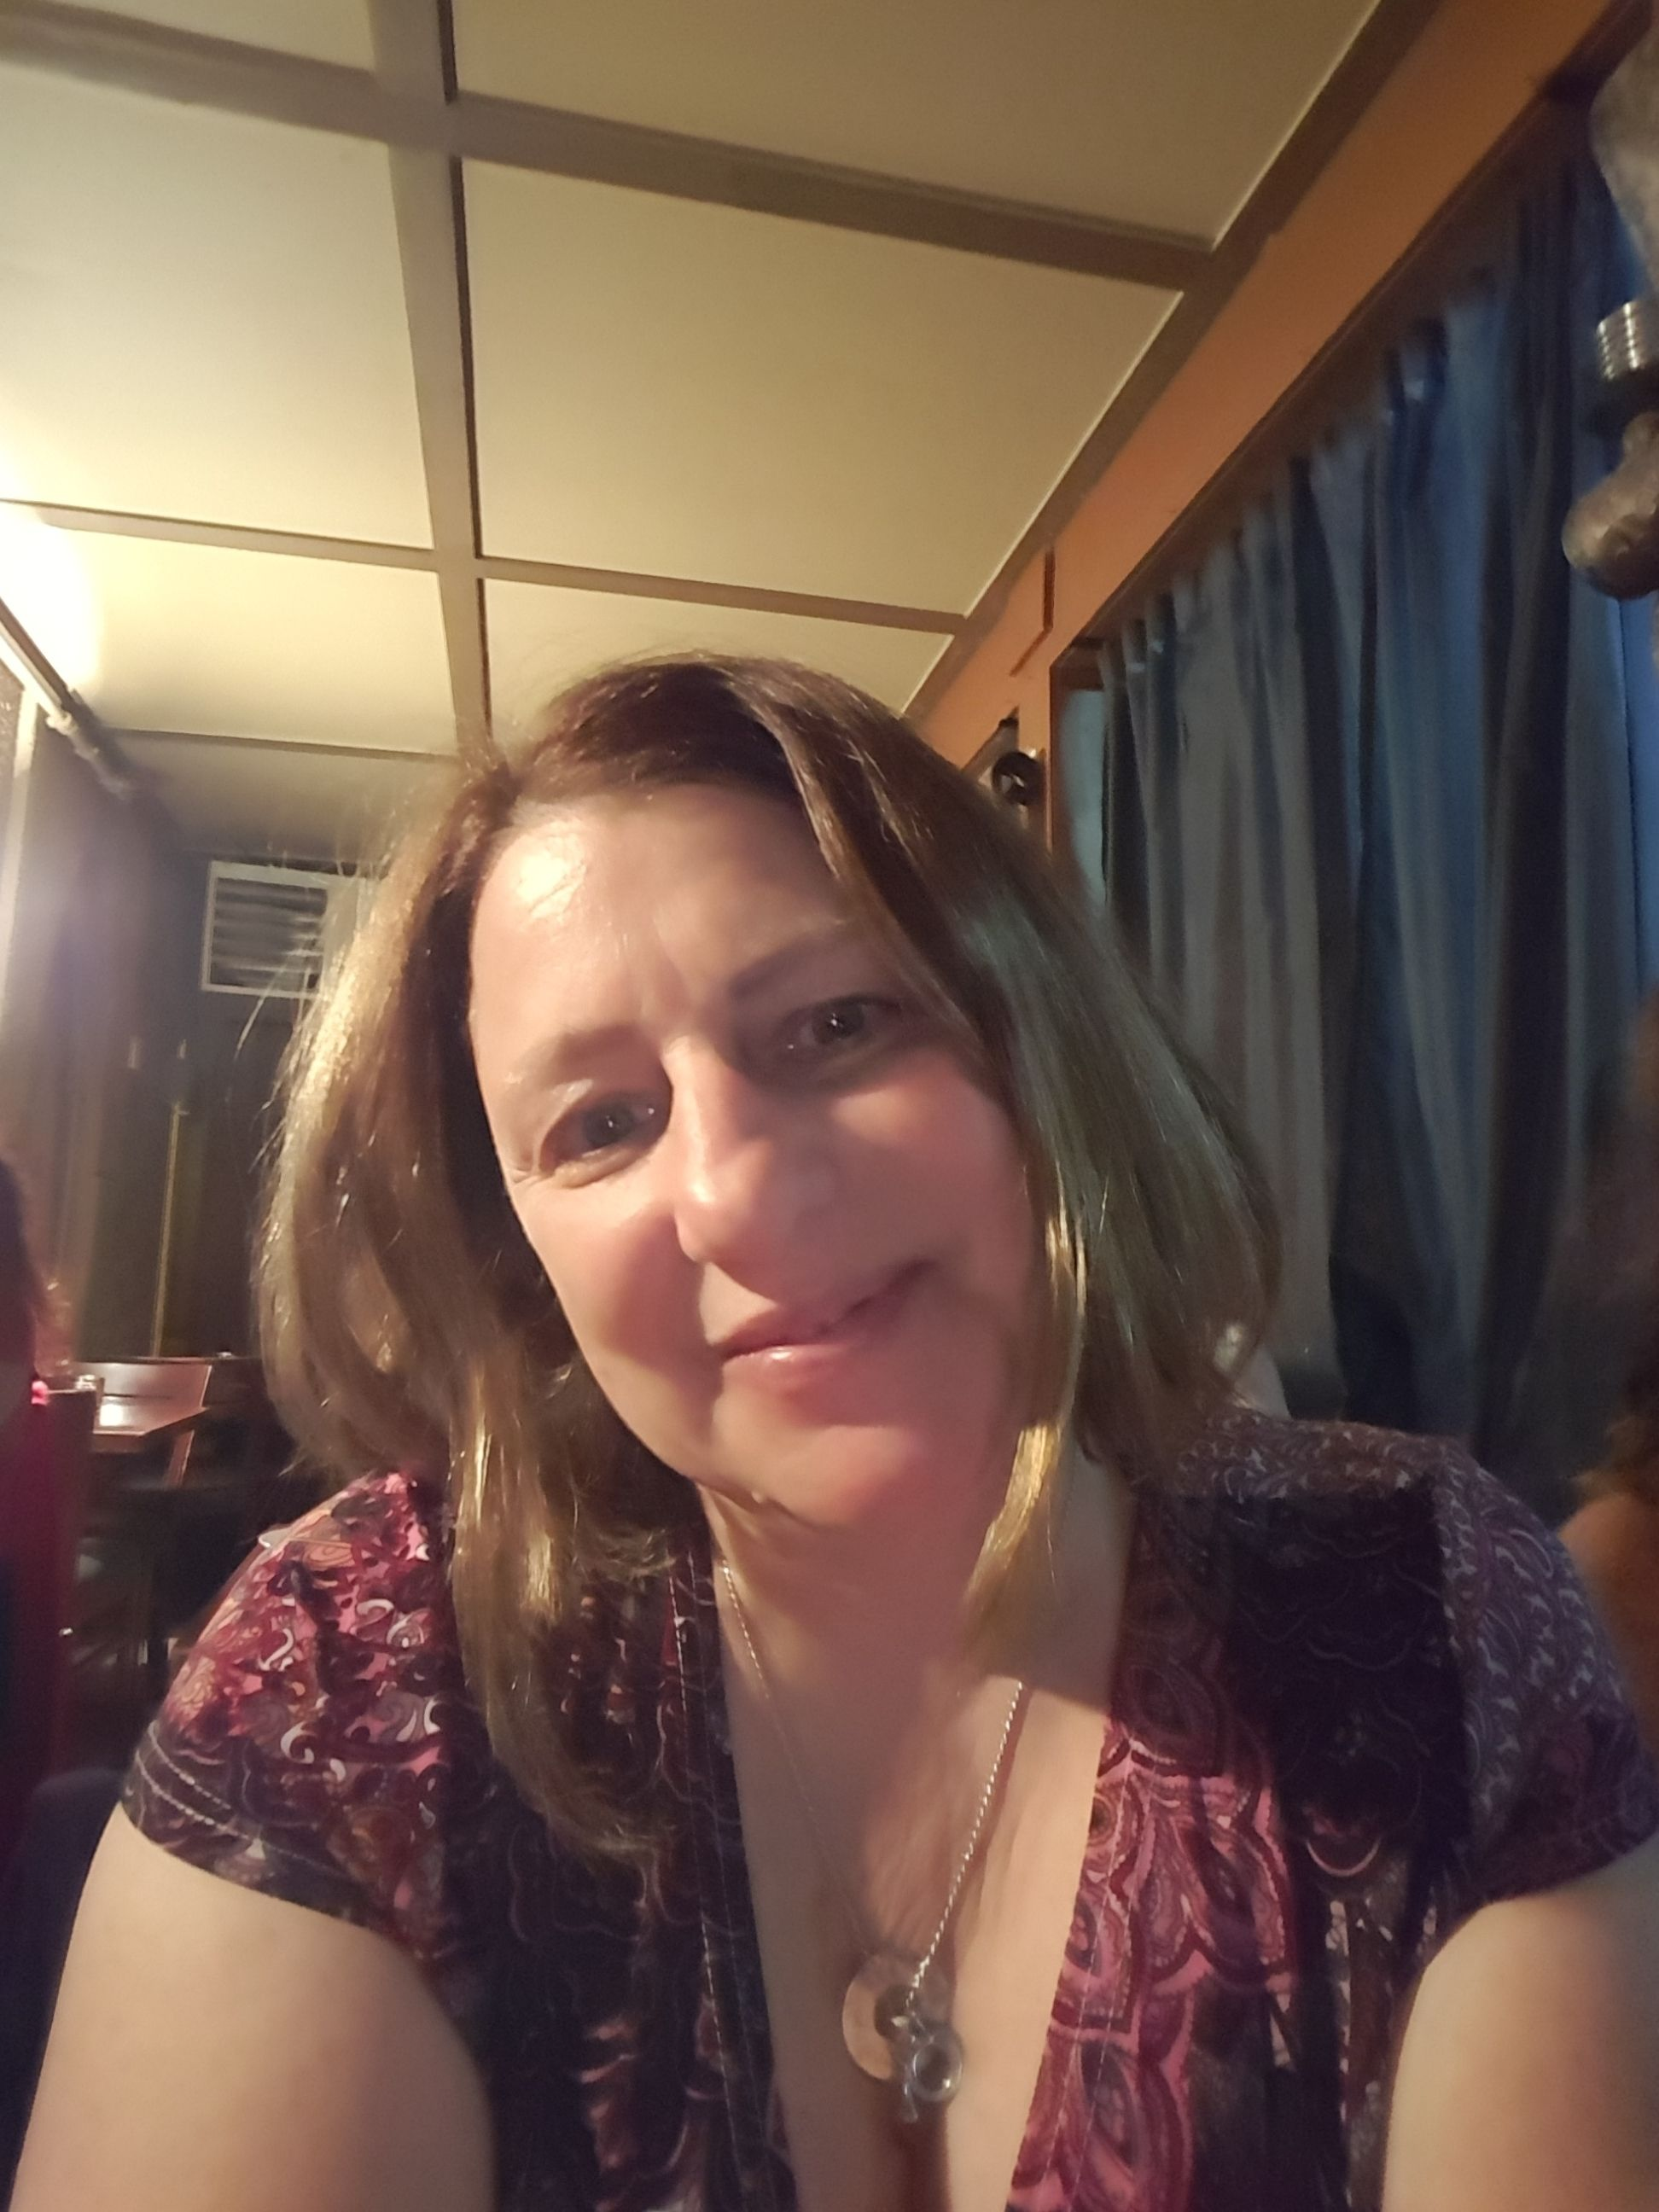 Meetup dating over 50